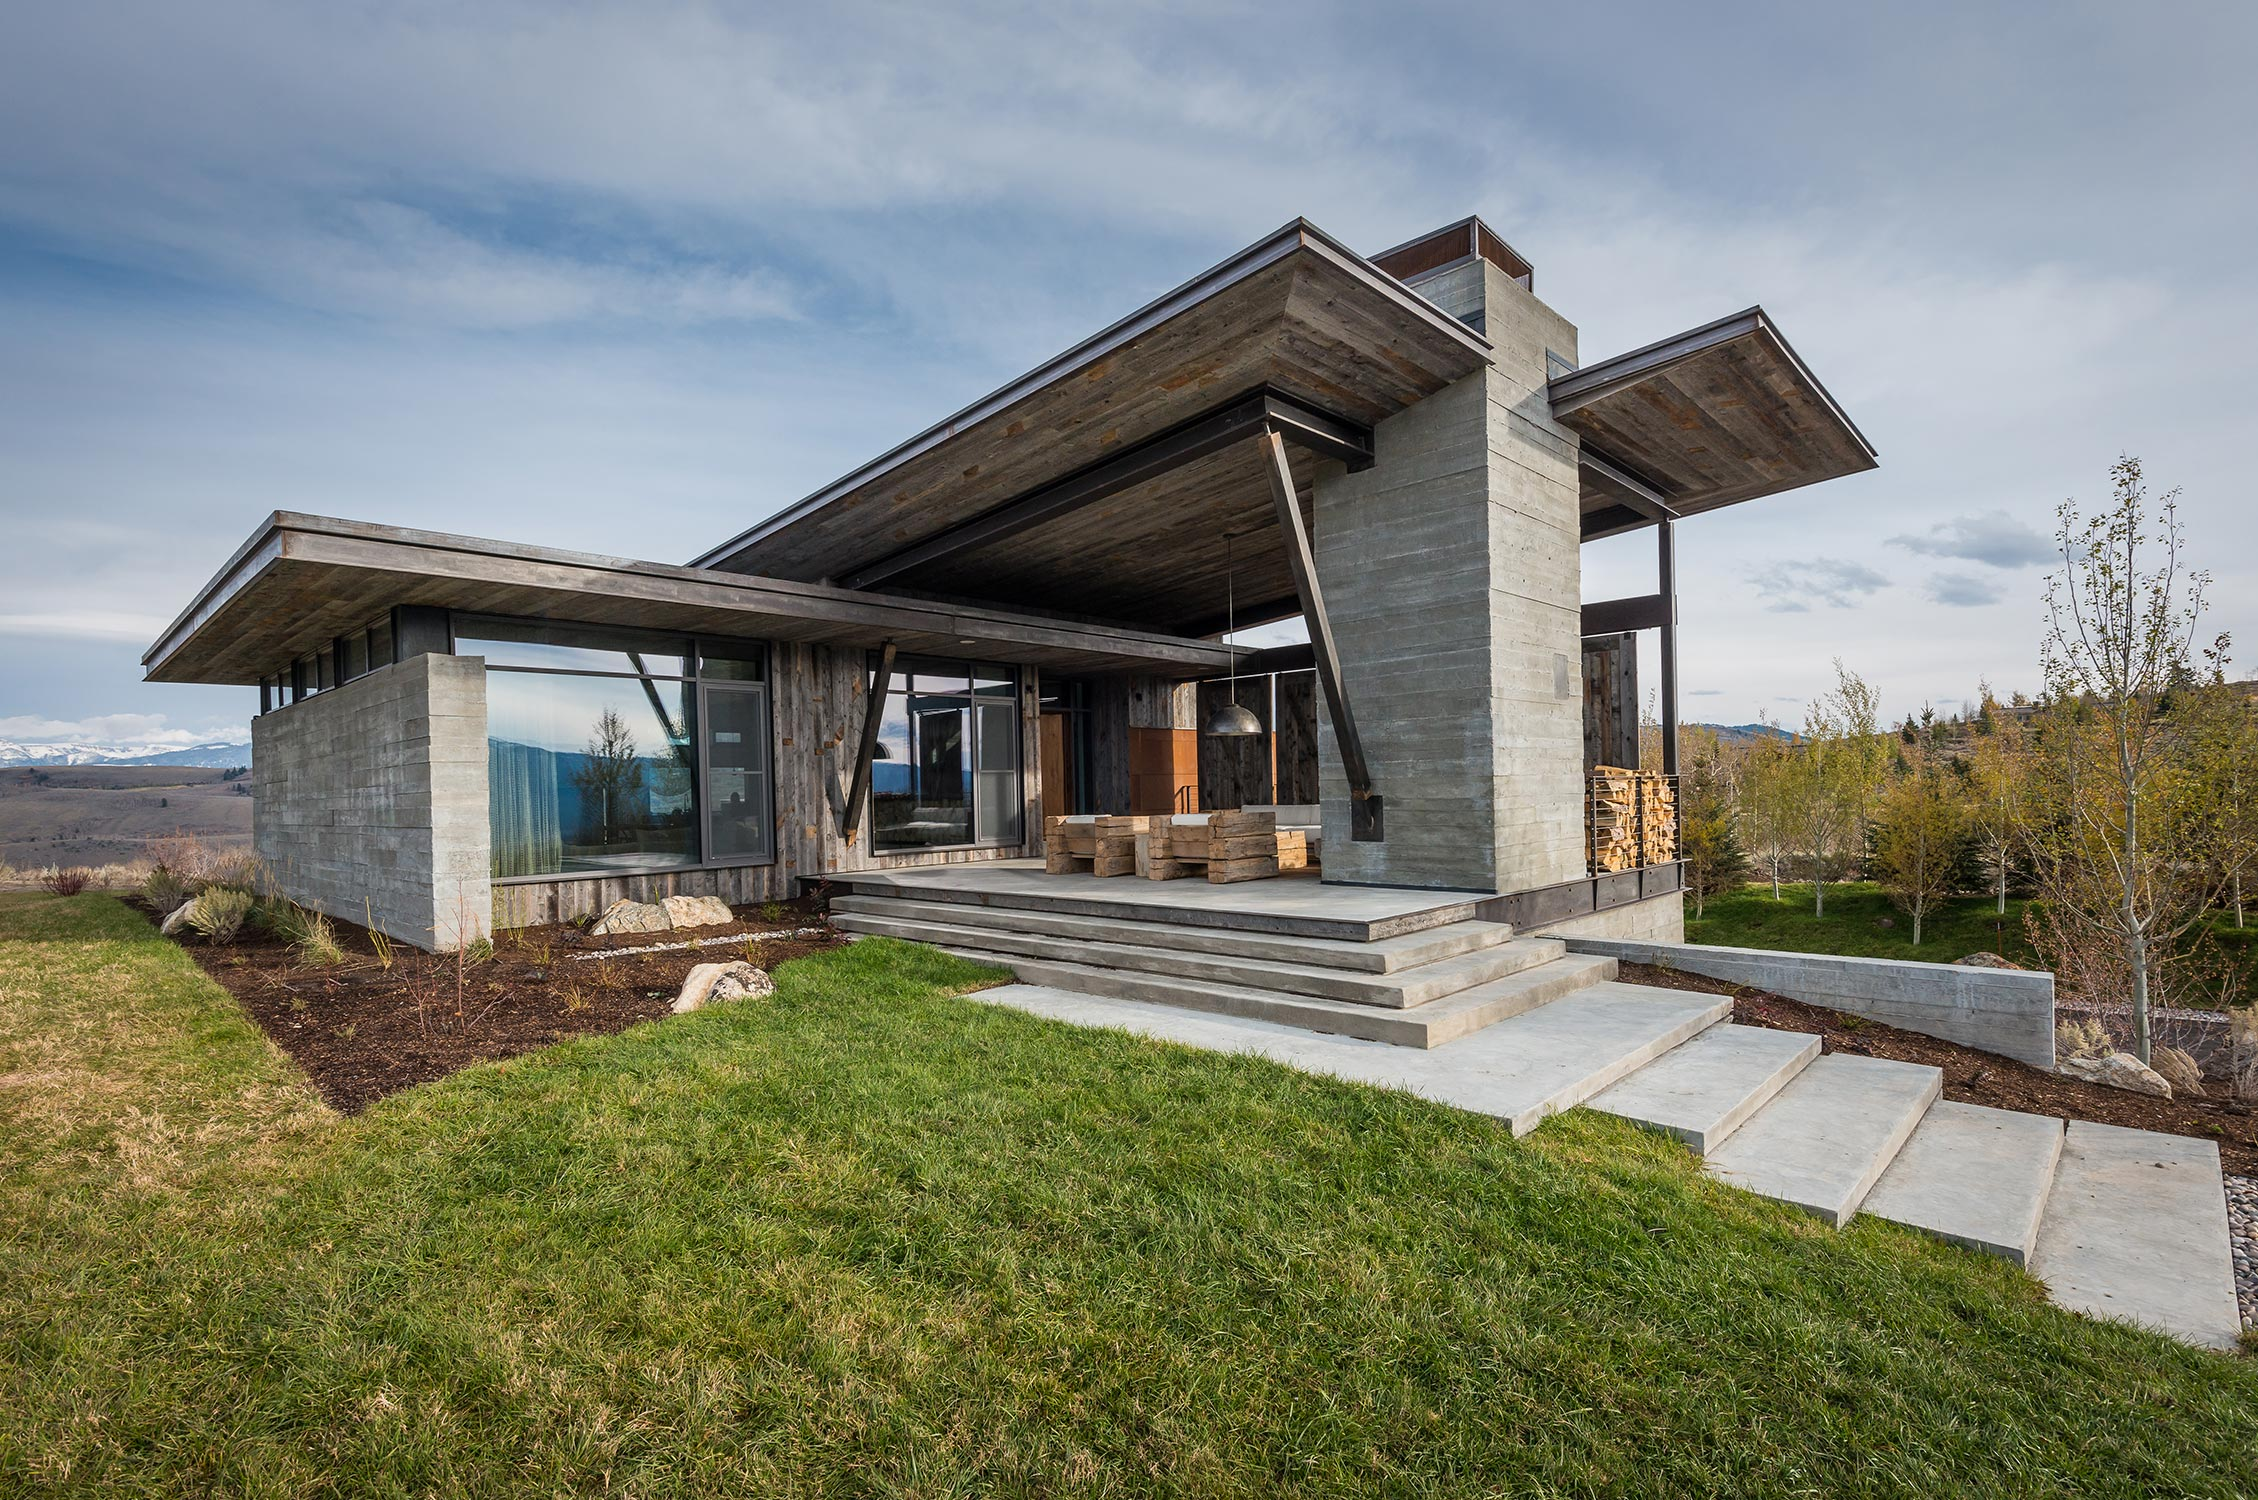 Pearson design group architecture services for Mountain modern architecture